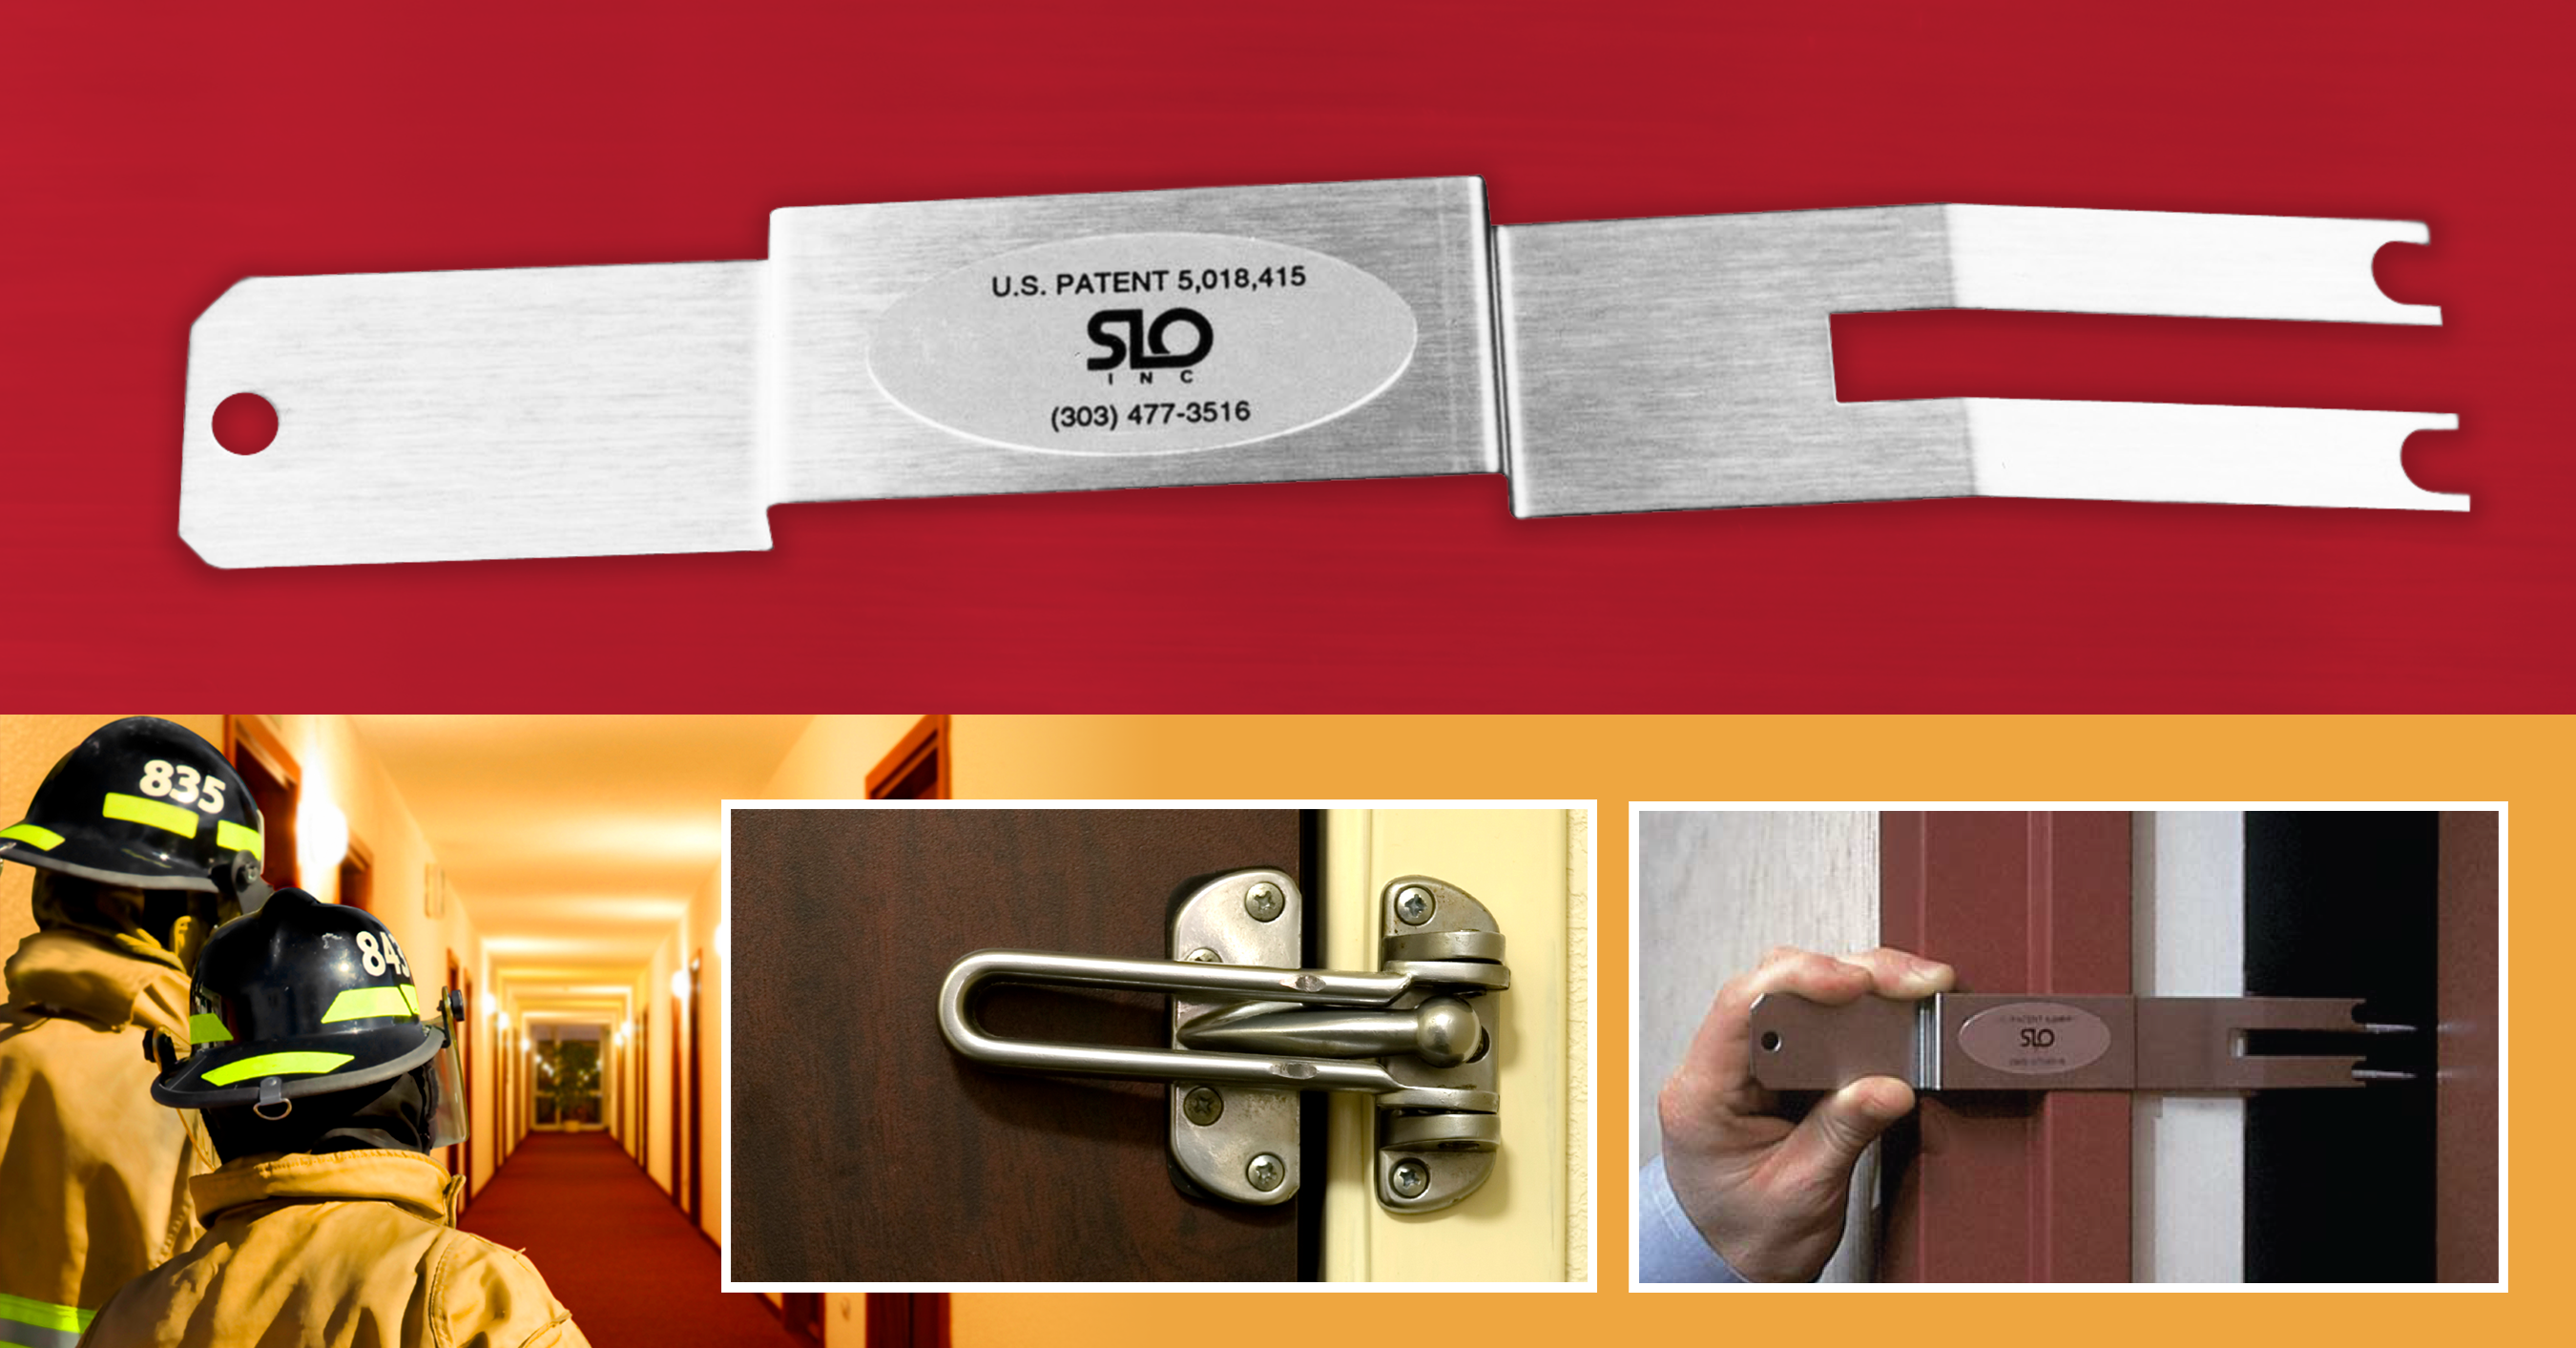 New tool allows quick emergency access to hotel rooms by